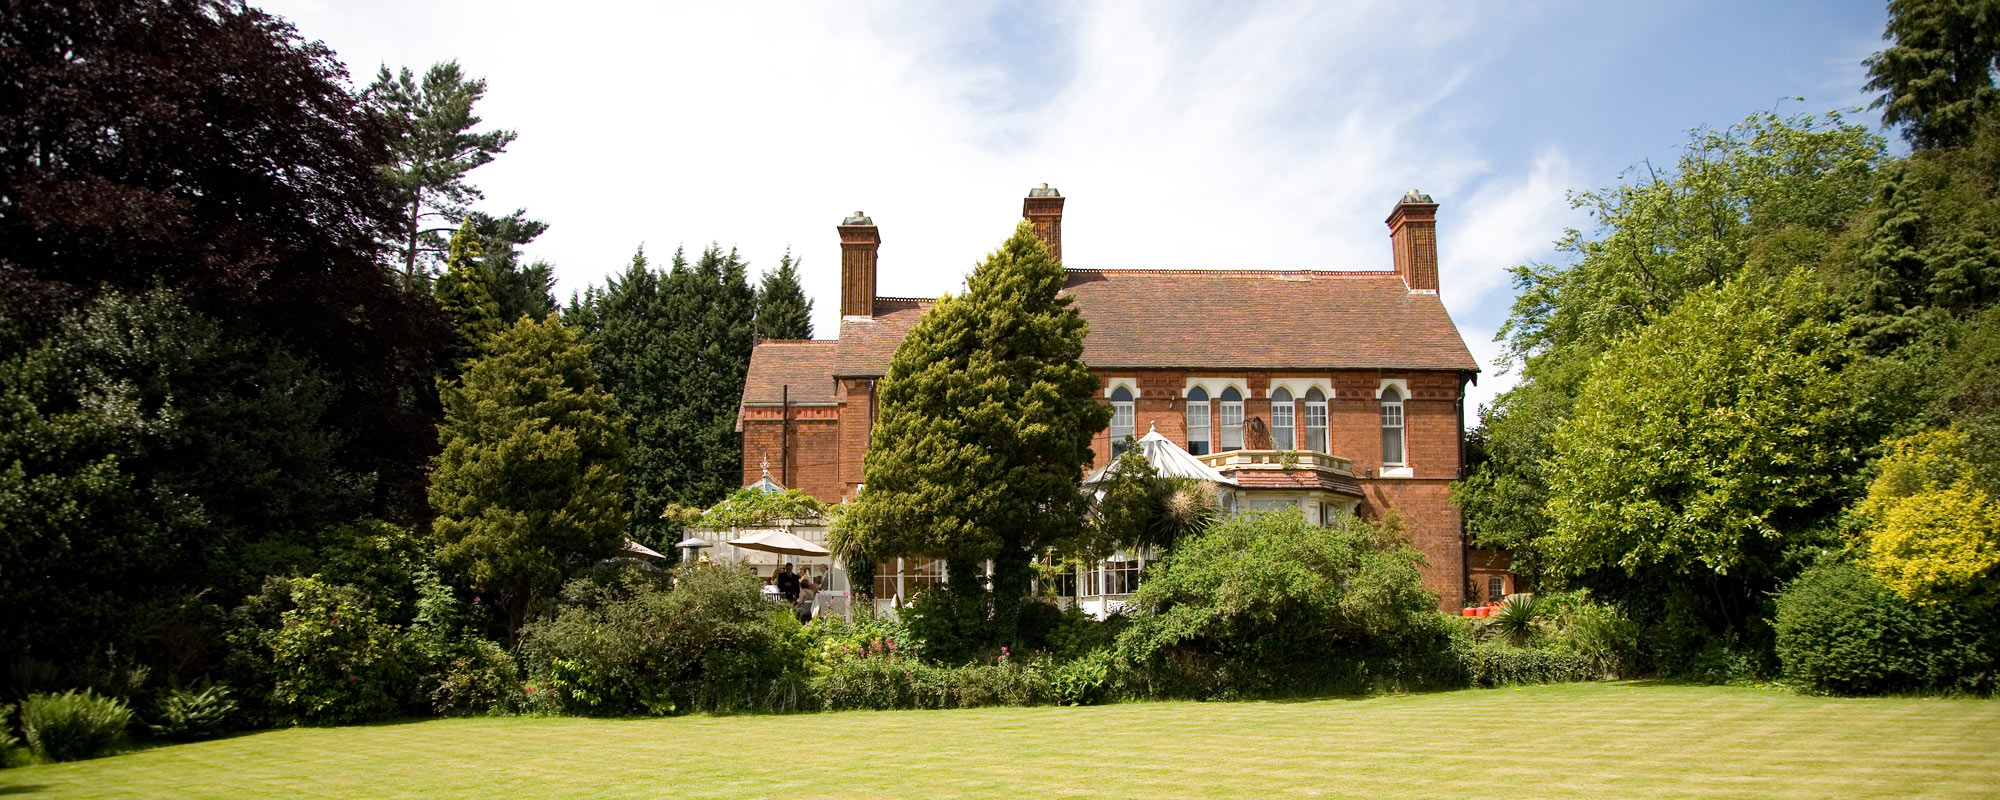 Berrow Court Wedding Venue in Birmingham